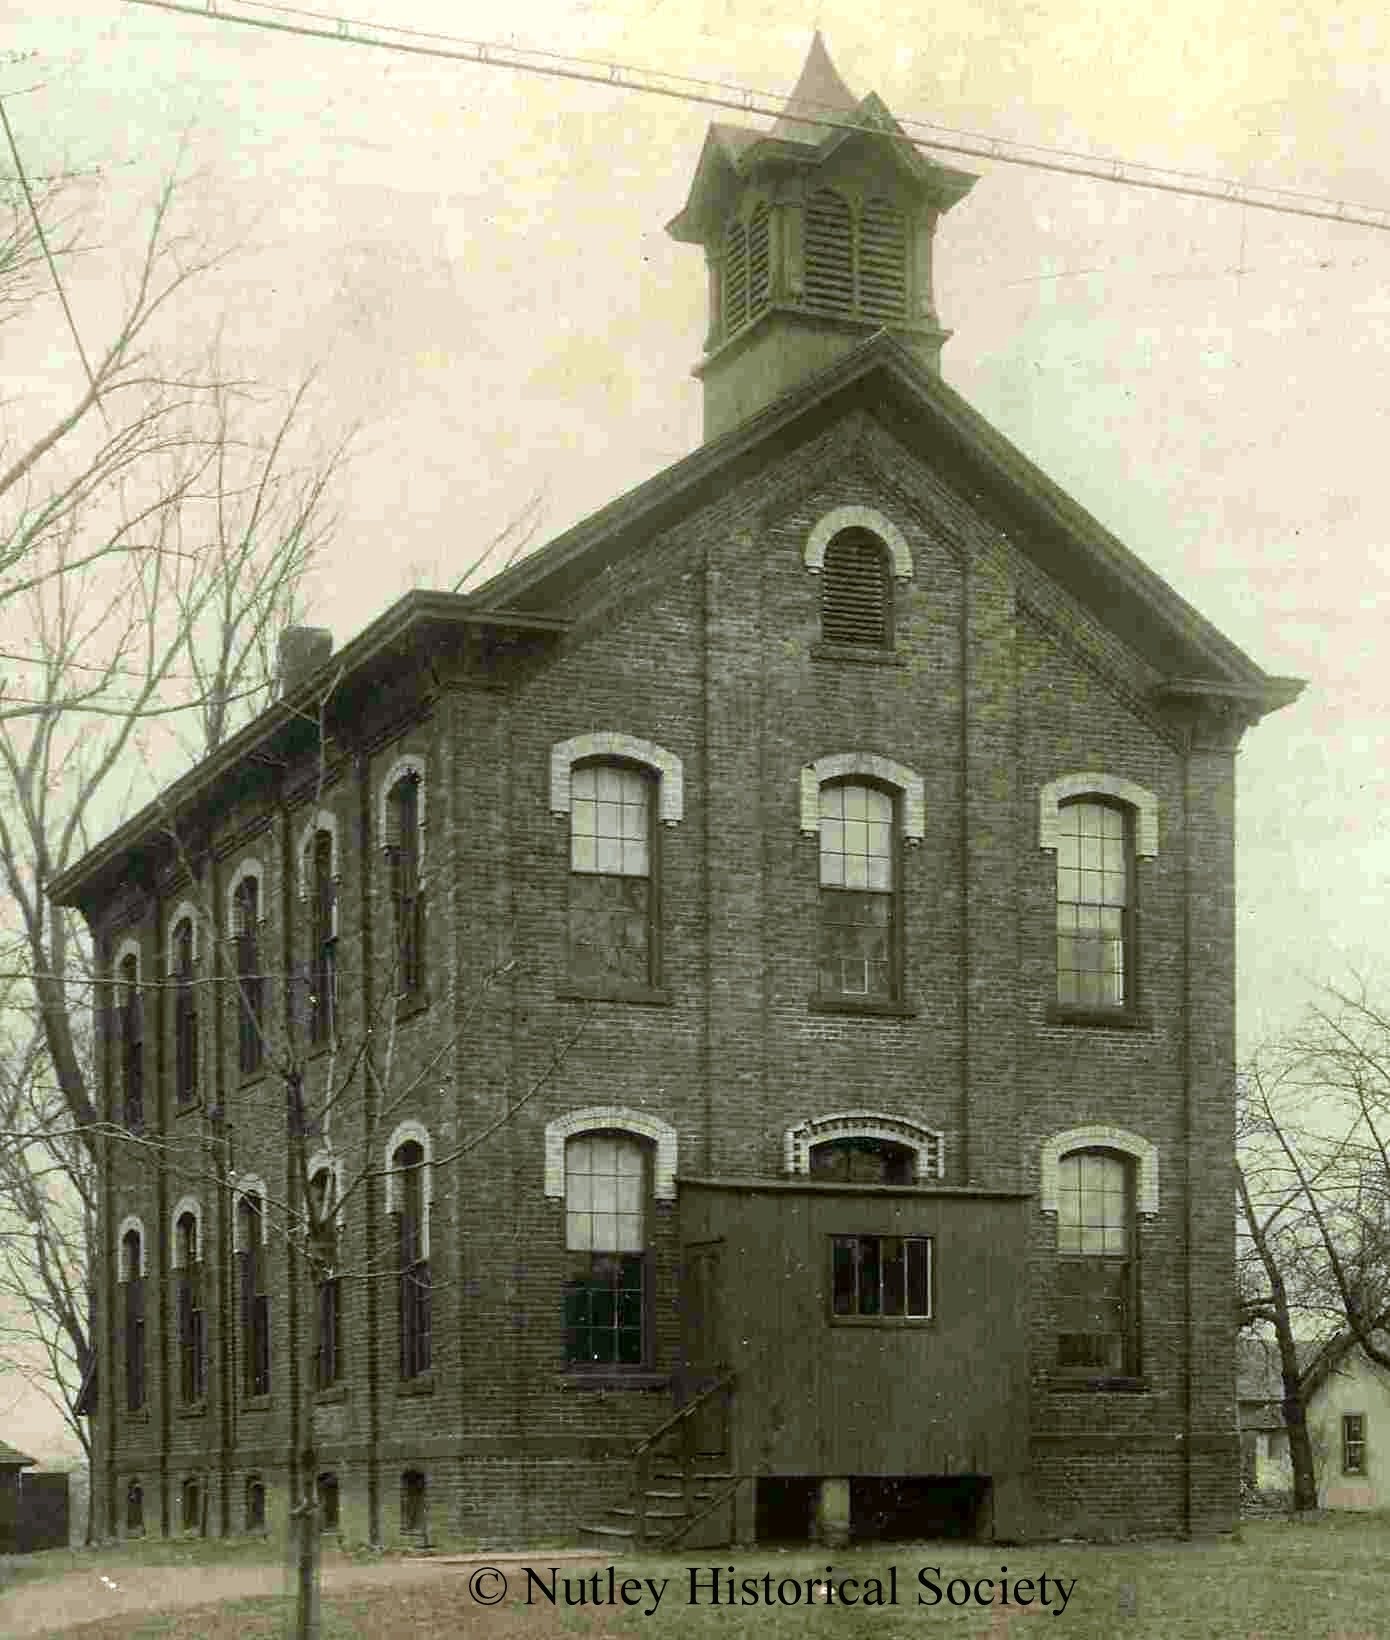 Church Street School, now the Nutley Historical Society and Nutley Museum